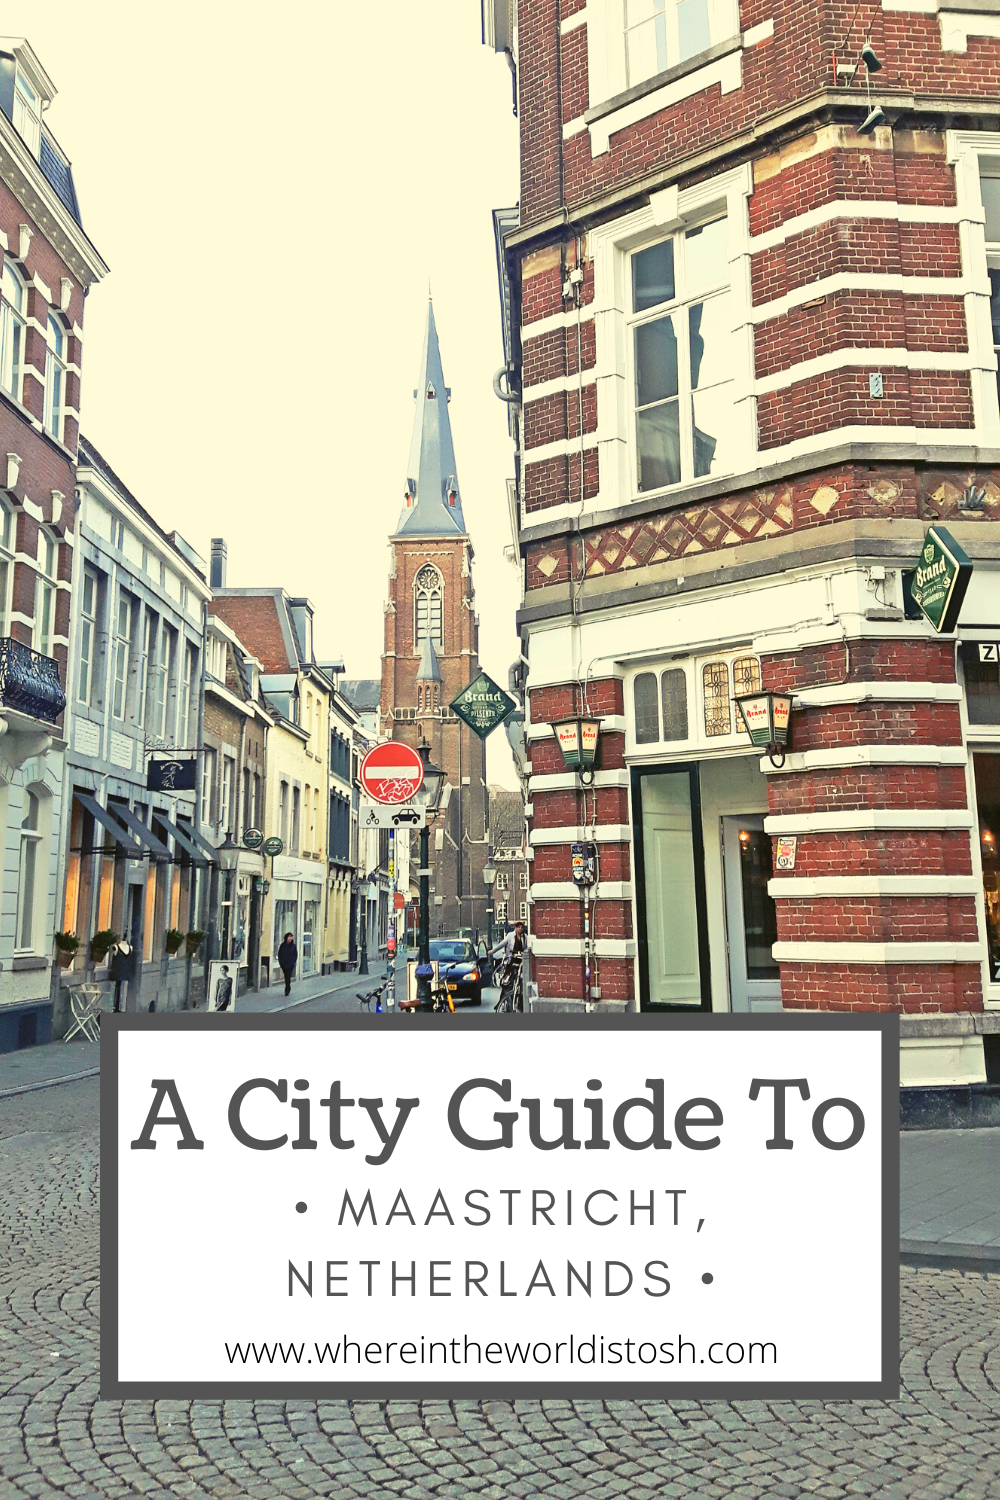 City Guide To Maastricht Netherlands